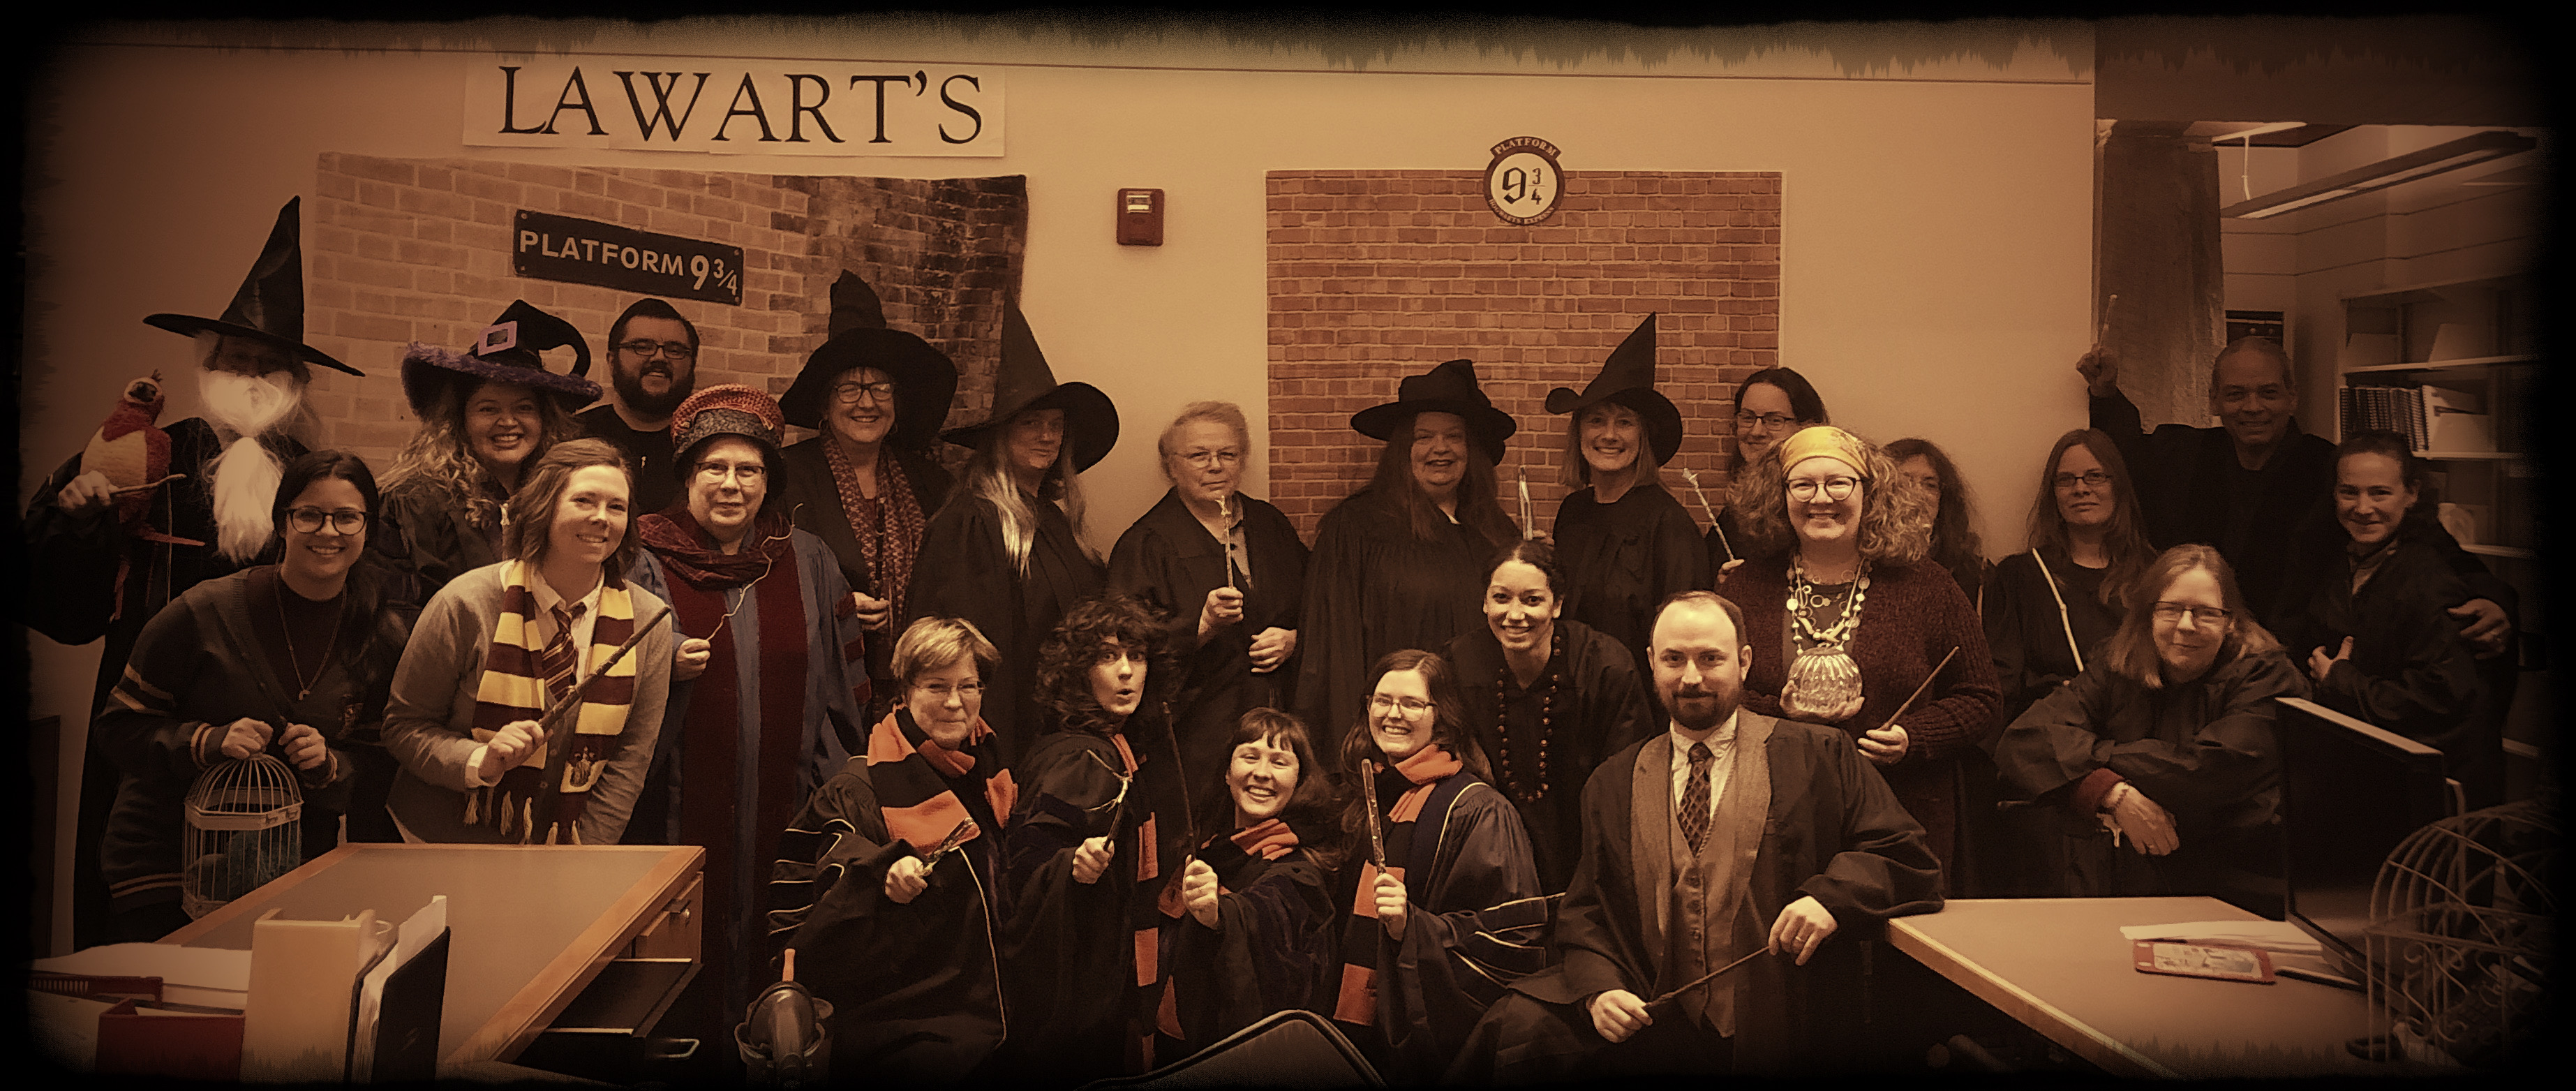 """20. """"Faculty and Students at Lawart's"""" by Boley Law Library, Business Services, Law Events, Law Faculty Services, Development, Alumni Office, Registrar's Office, and the Dean's Office."""